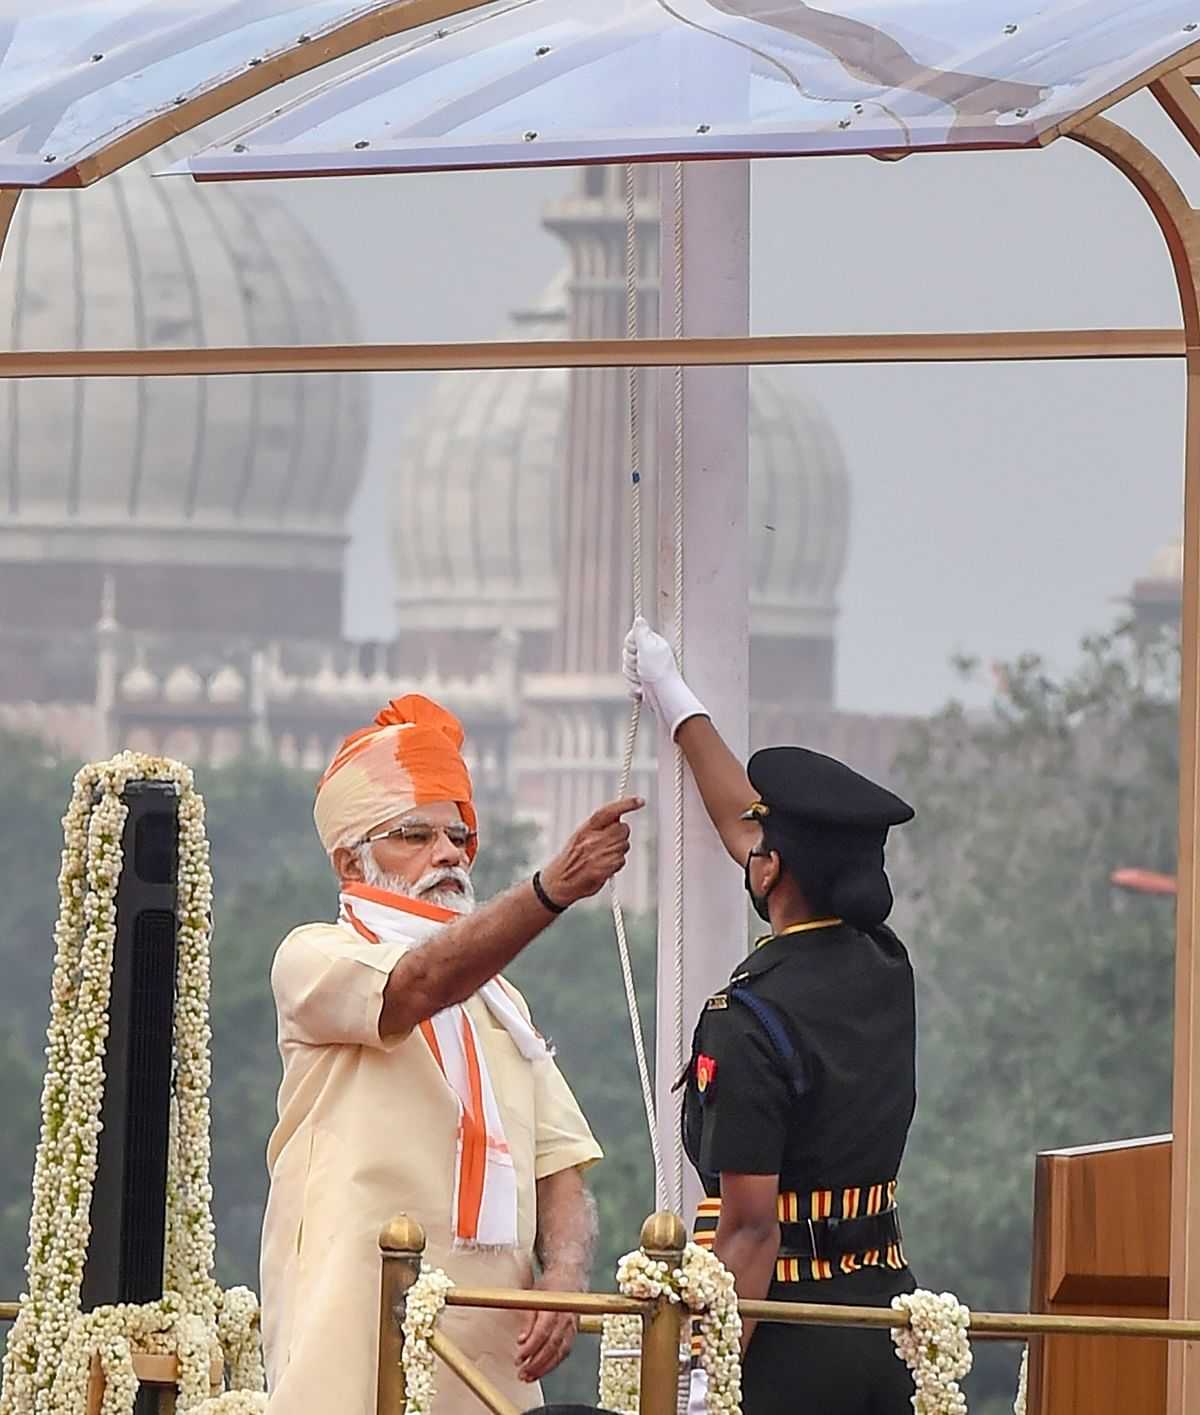 Prime Minister Narendra Modi unfurls the national flag during the 74th Independence Day celebrations, at Red Fort in New Delhi, Saturday, Aug. 15, 2020.